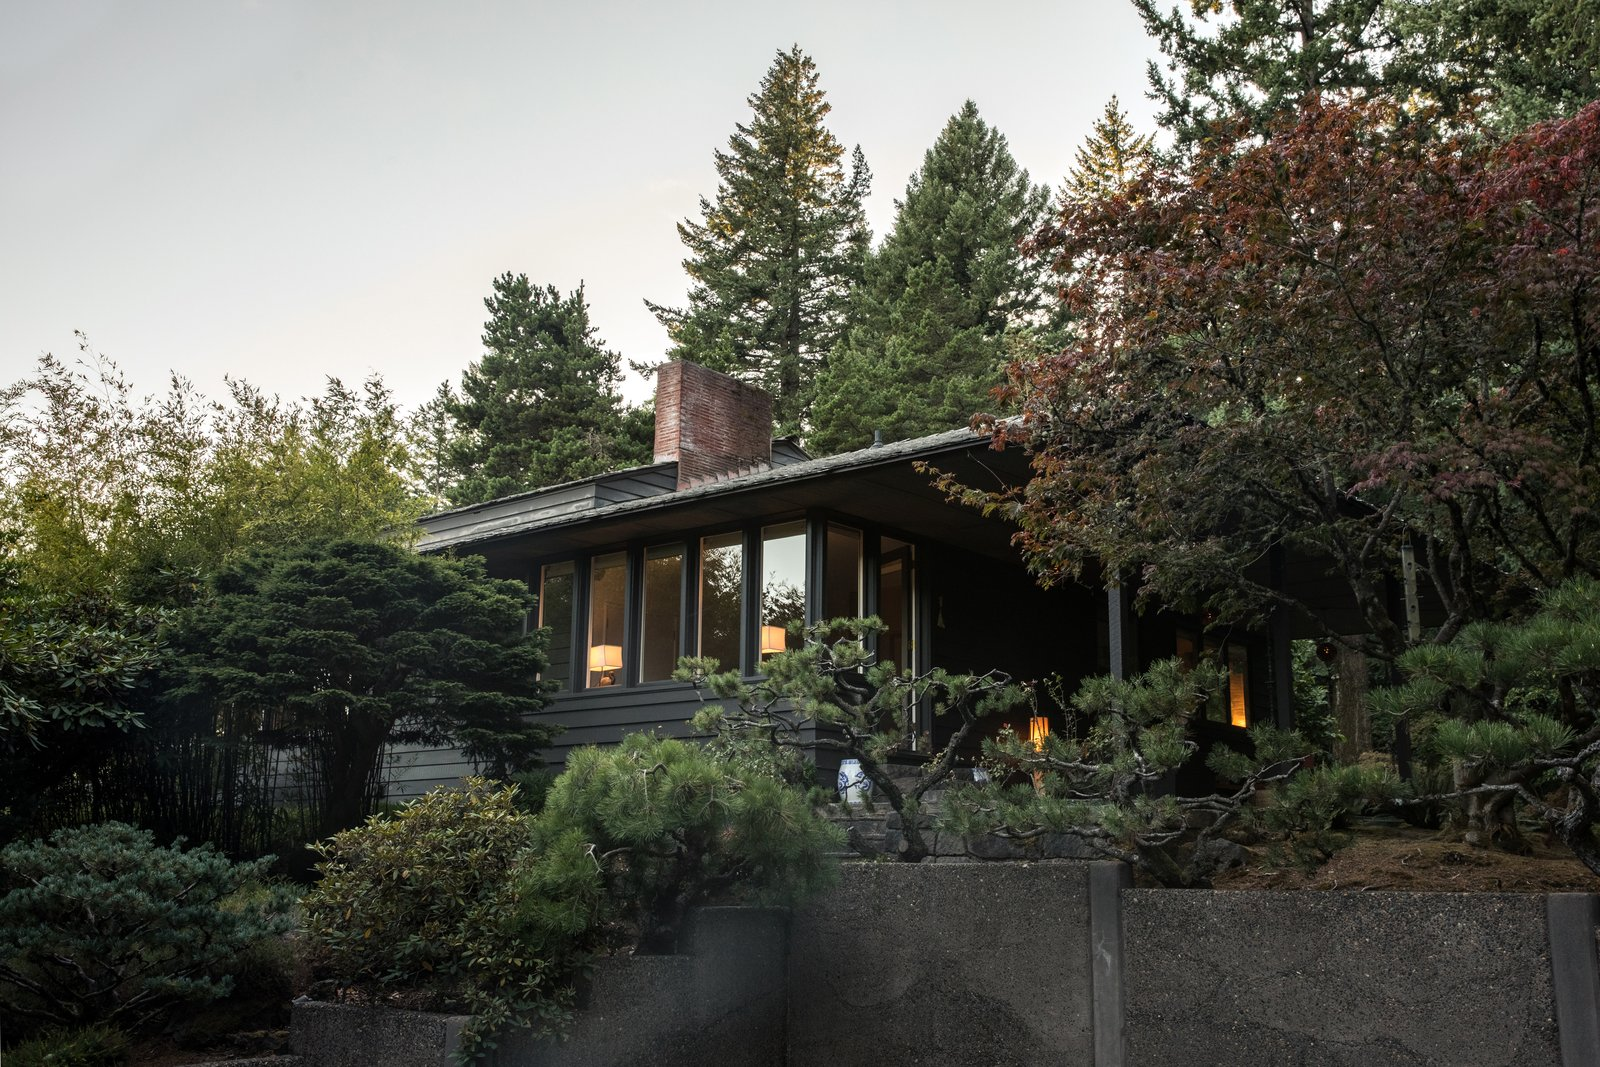 Exterior, House Building Type, Wood Siding Material, and Shingles Roof Material With the aid of landscaper Takashi Fukuda and the home's original plans, the residents are gradually reclaiming the multileveled site.  The 2,300-square-foot home's overhangs shelter its porches (opposite, far right).  Photo 7 of 15 in Nearly 80 Years Later, an Architect Rescues a Japanese-Inspired  Masterwork Designed by His Father